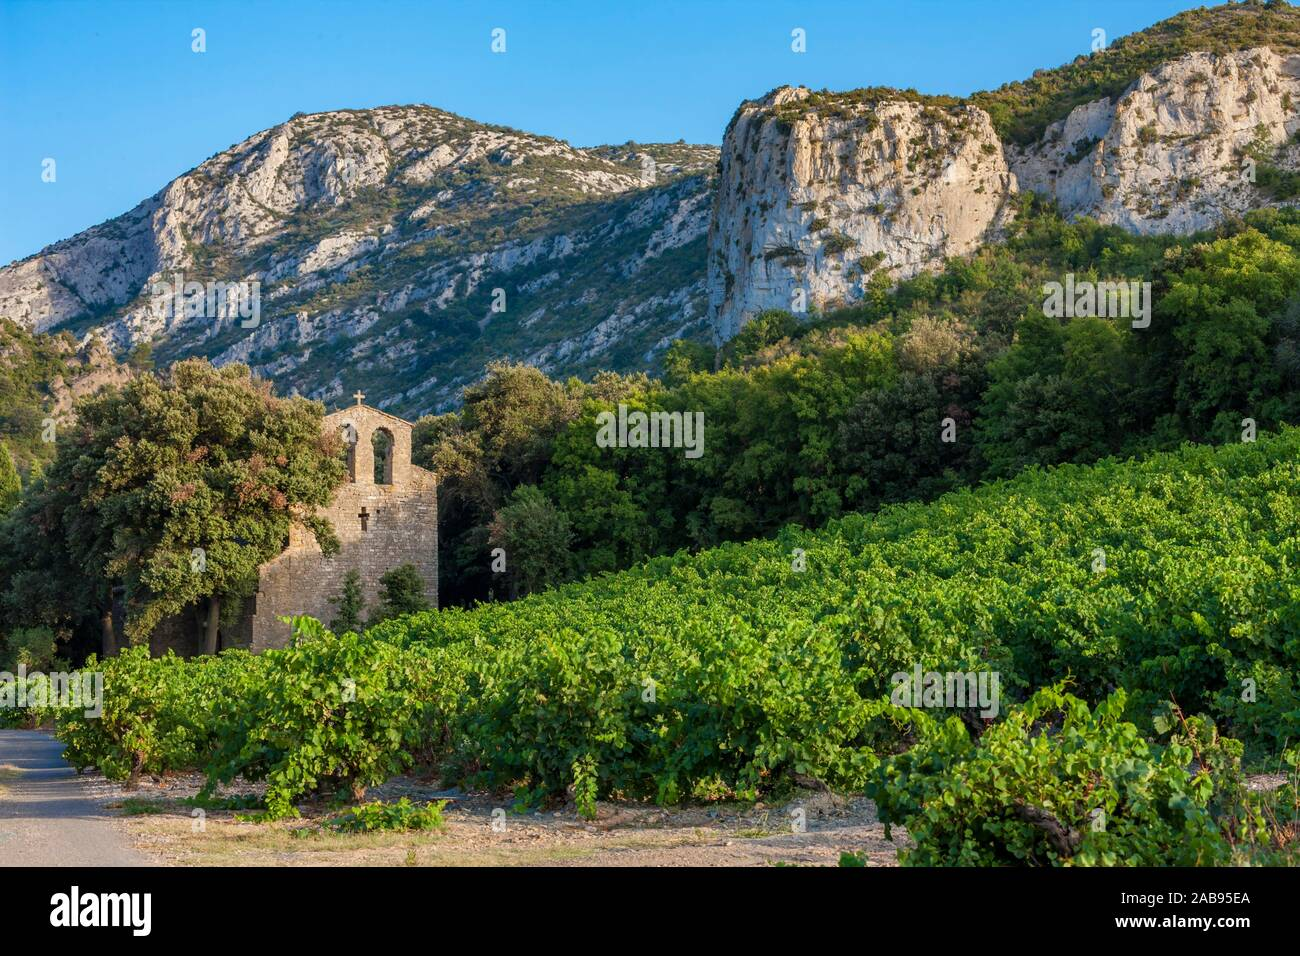 vineyards in the wine region Languedoc-Roussillon, Roussillon, France. Stock Photo